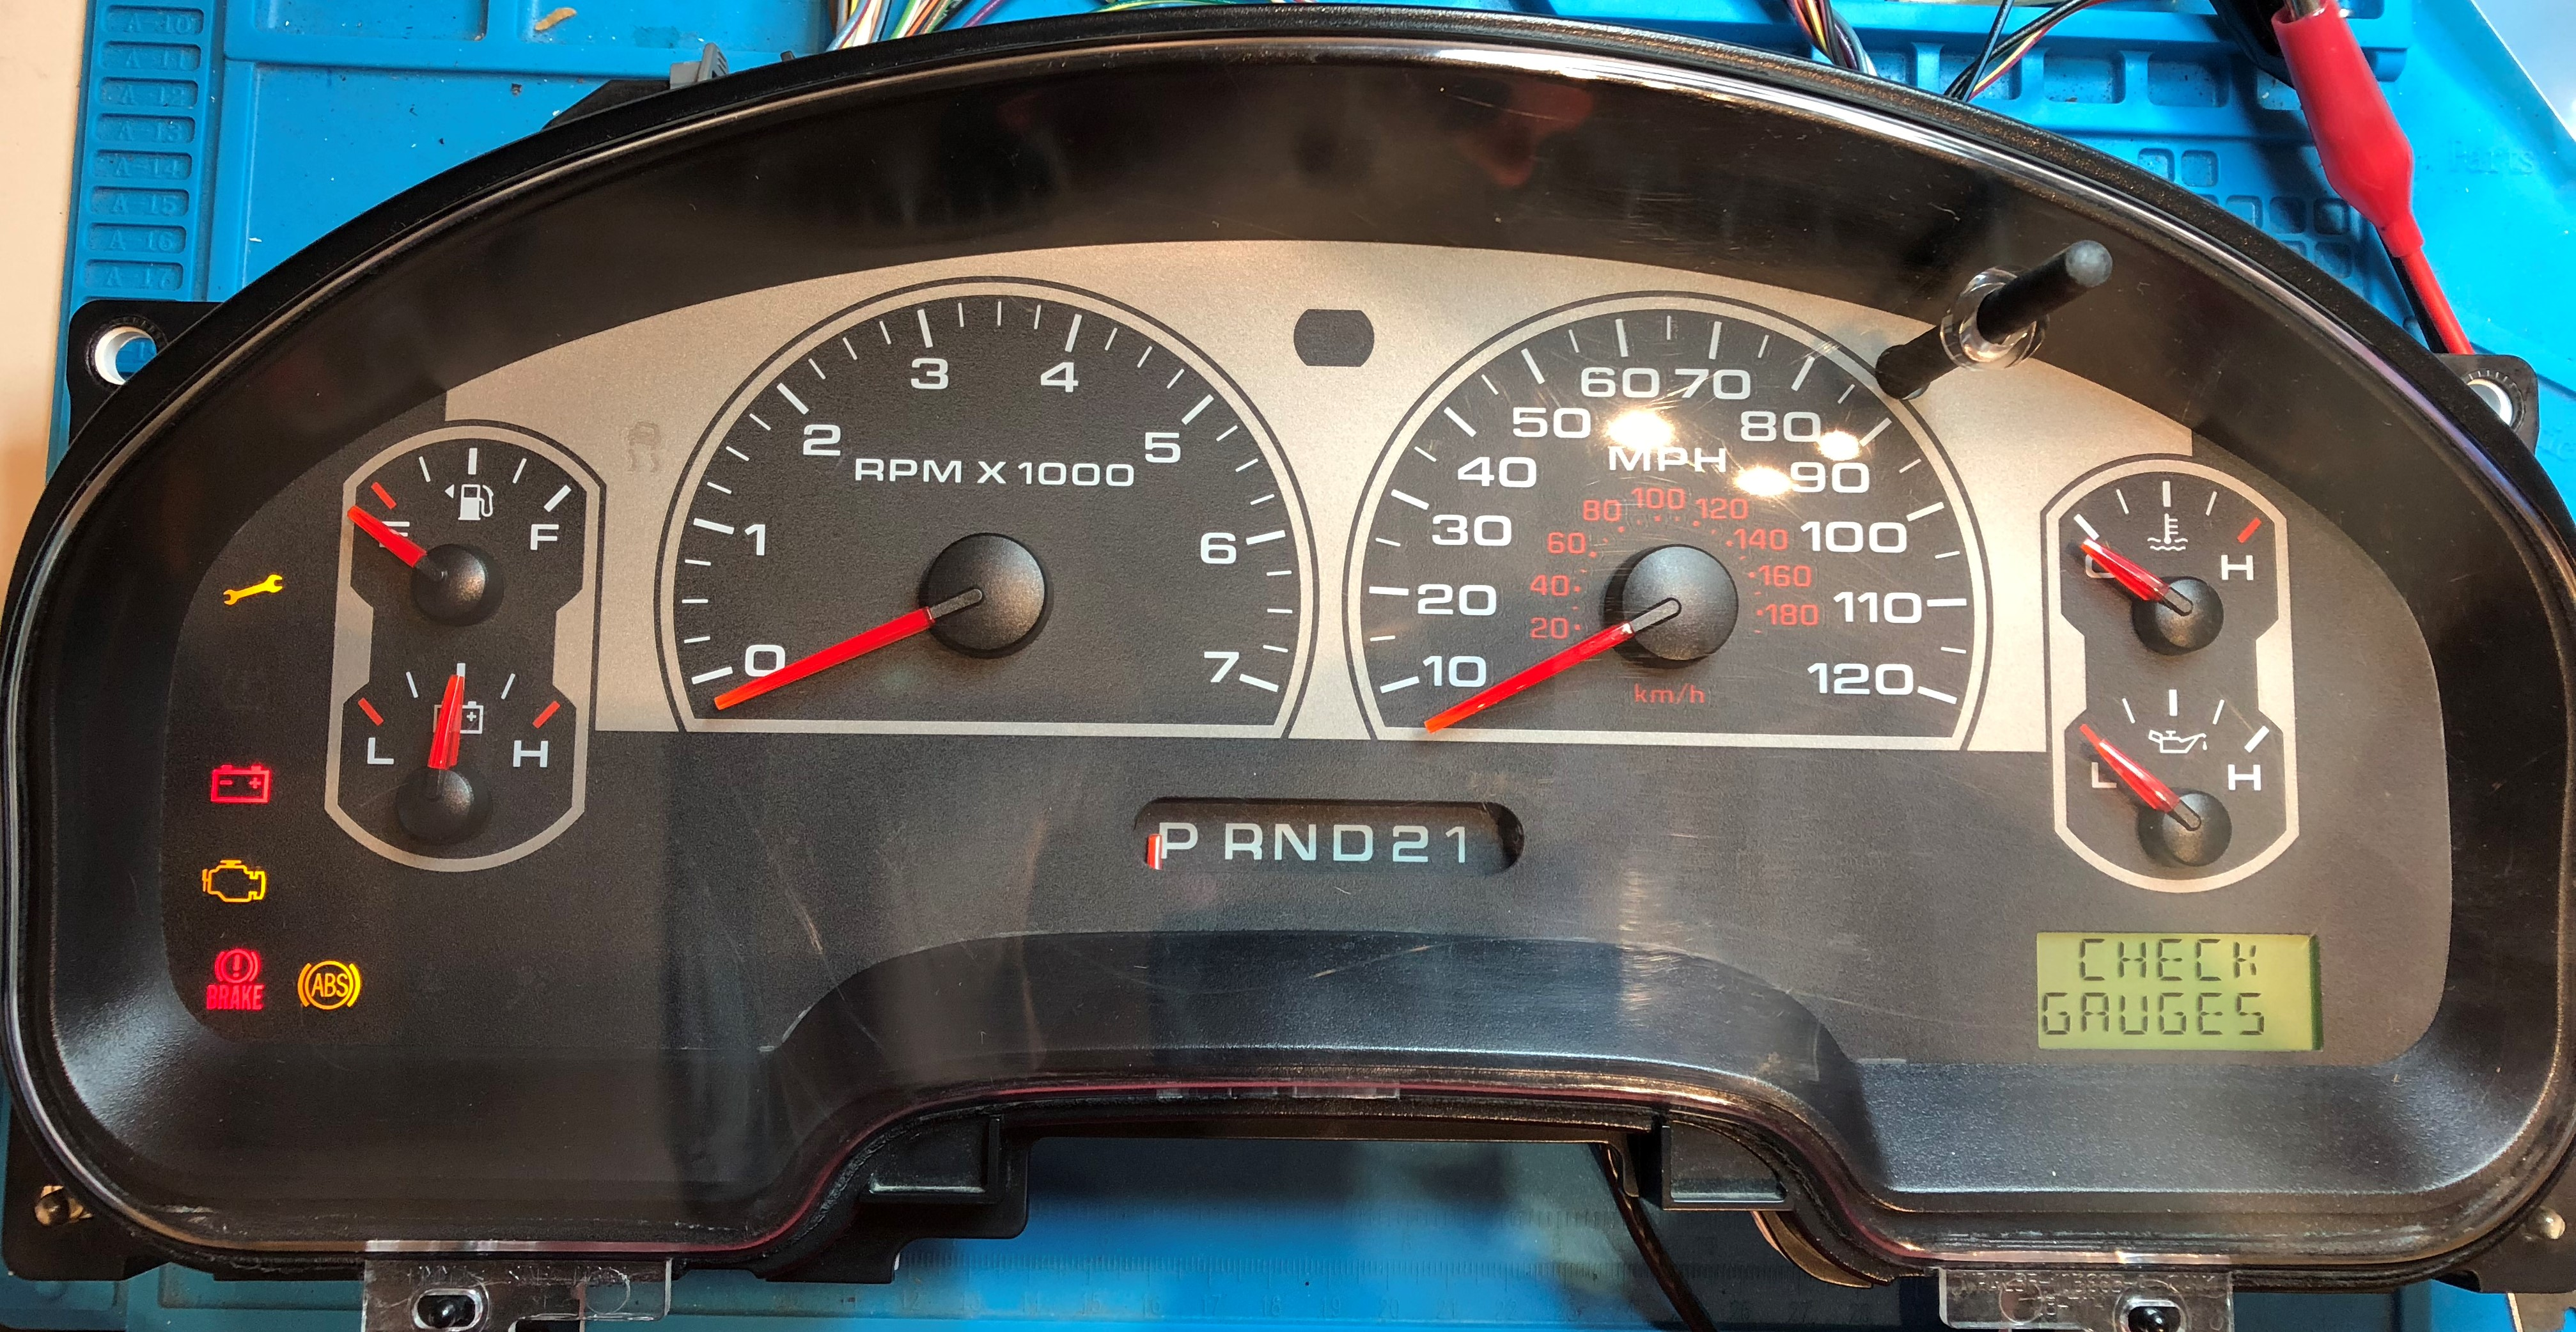 2006 FORD F150 XLT USED DASHBOARD INSTRUMENT CLUSTER FOR SALE (MPH)